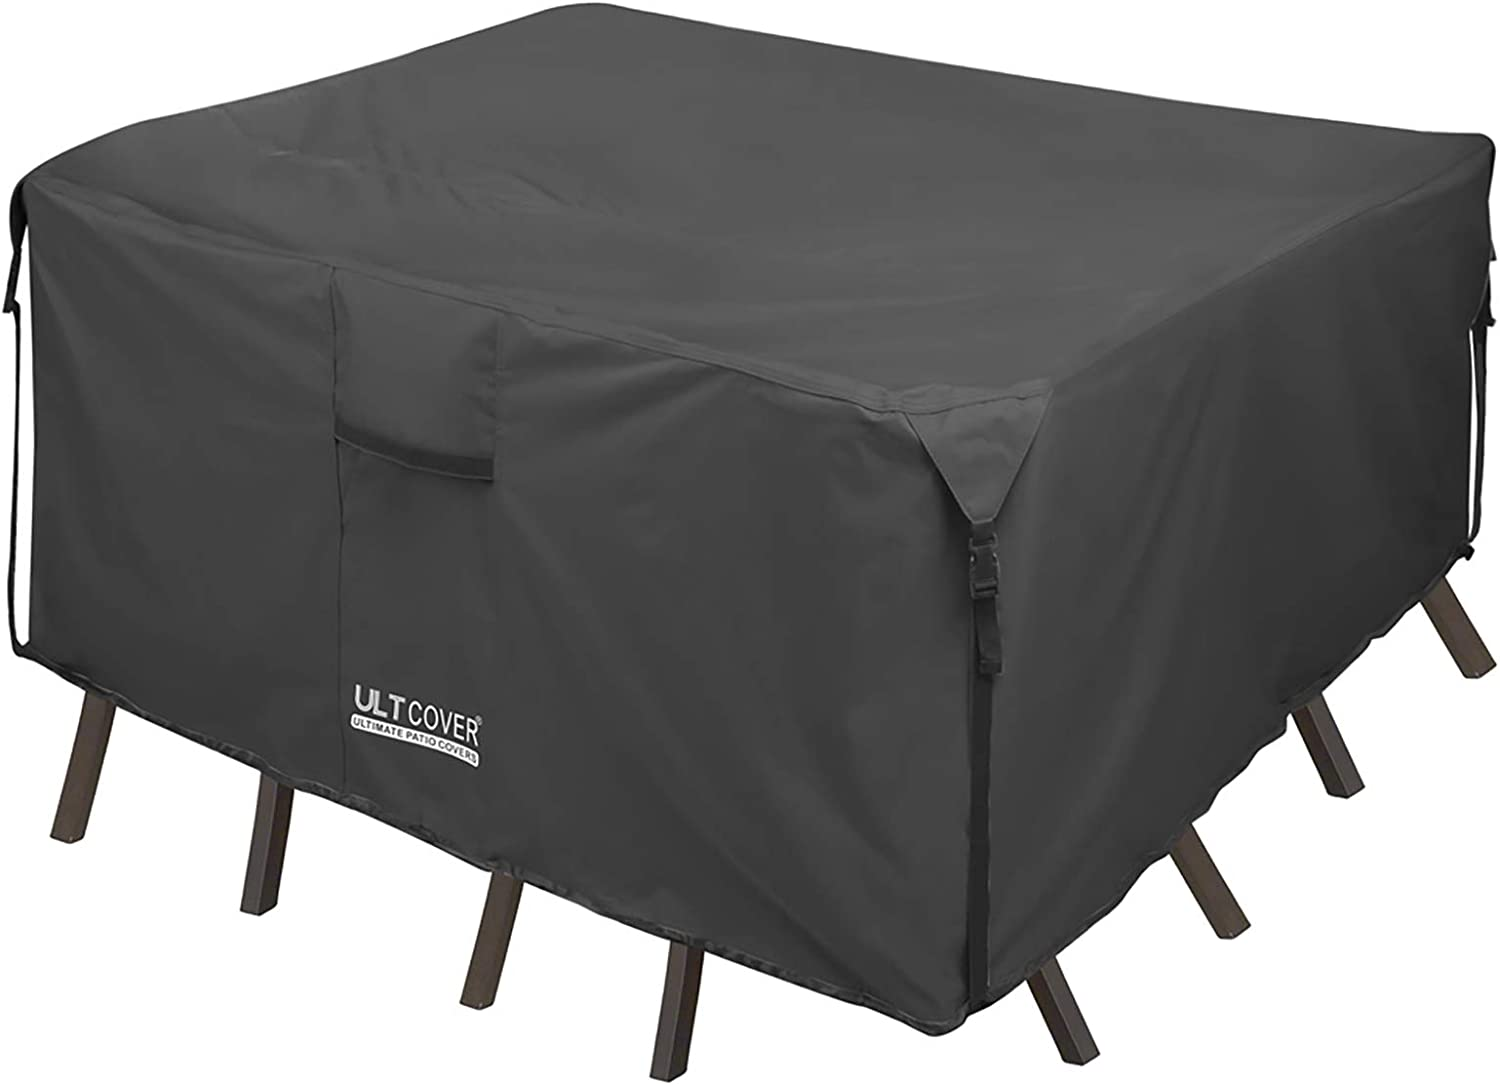 Amazon Com Ultcover 600d Tough Canvas Durable Square Patio Table And Chair Cover Waterproof Outdoor General Purpose Furniture Covers 54 Inch Black Furniture Decor